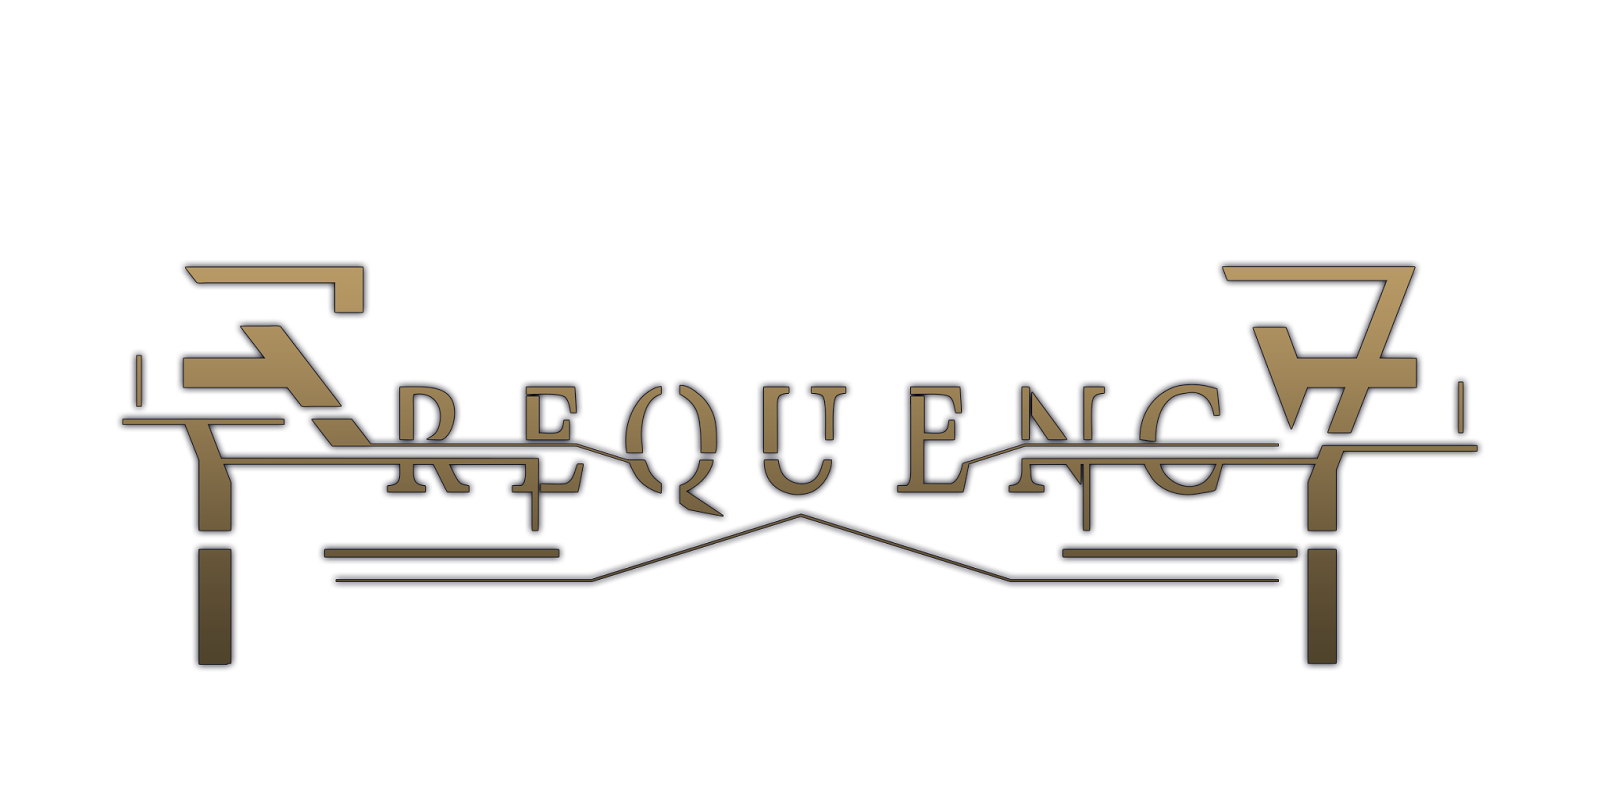 Frequency logo